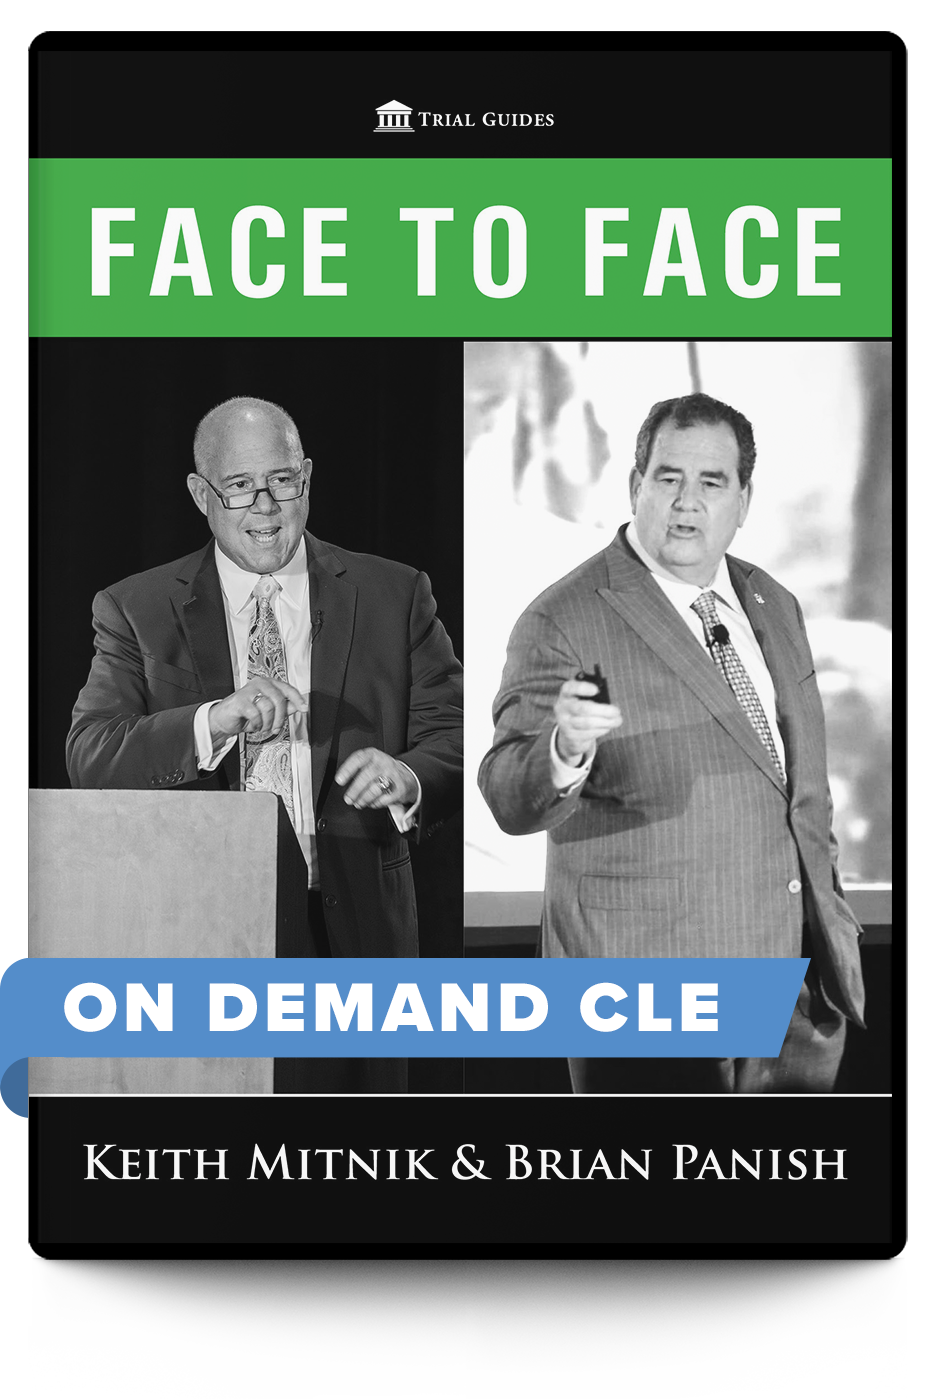 FACE to FACE: Mitnik & Panish - On Demand CLE